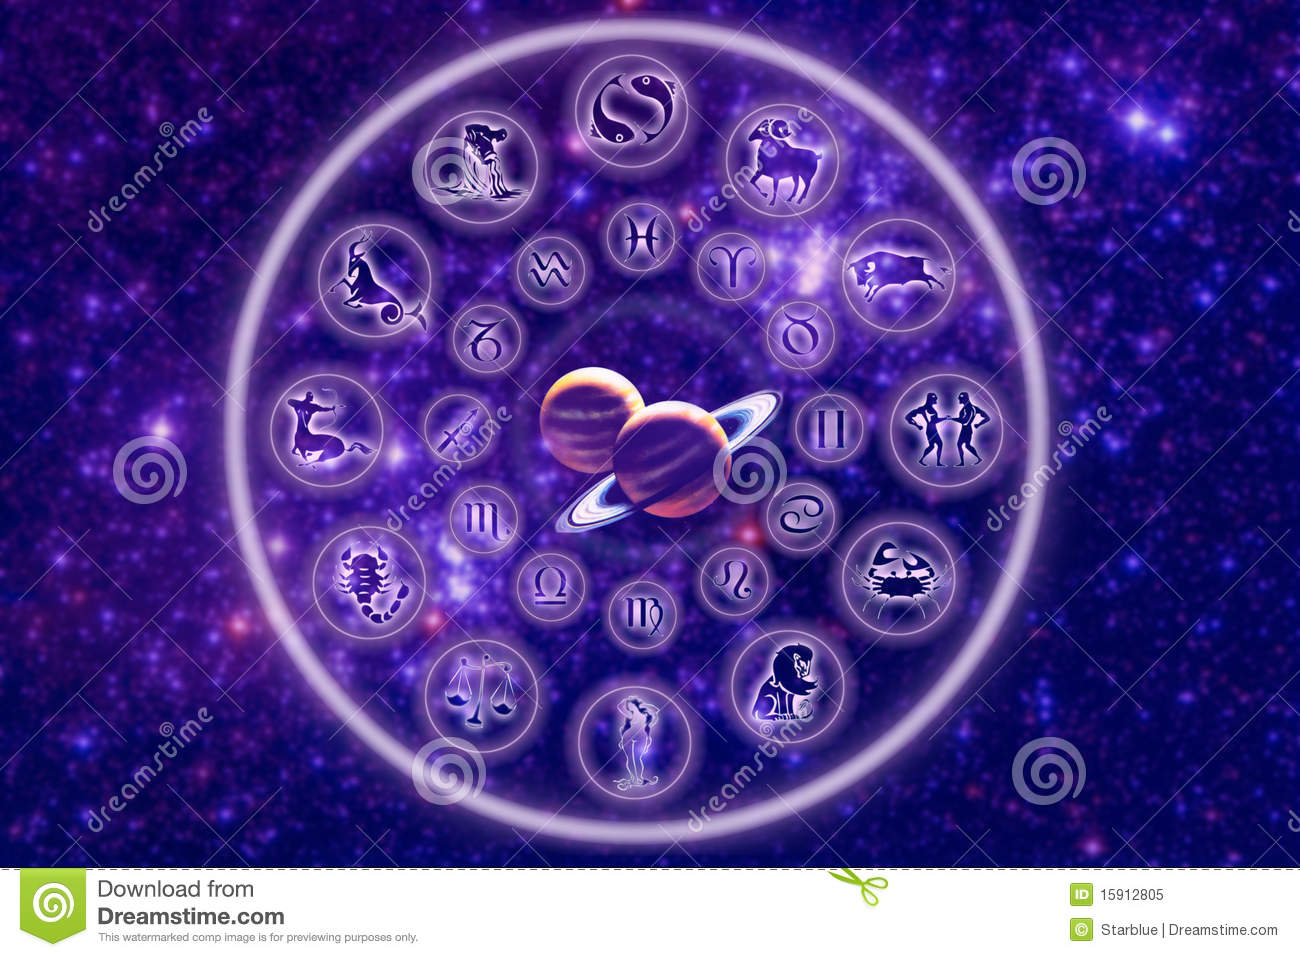 Zodiac With Planets Royalty Free Stock Photo - Image: 15912805